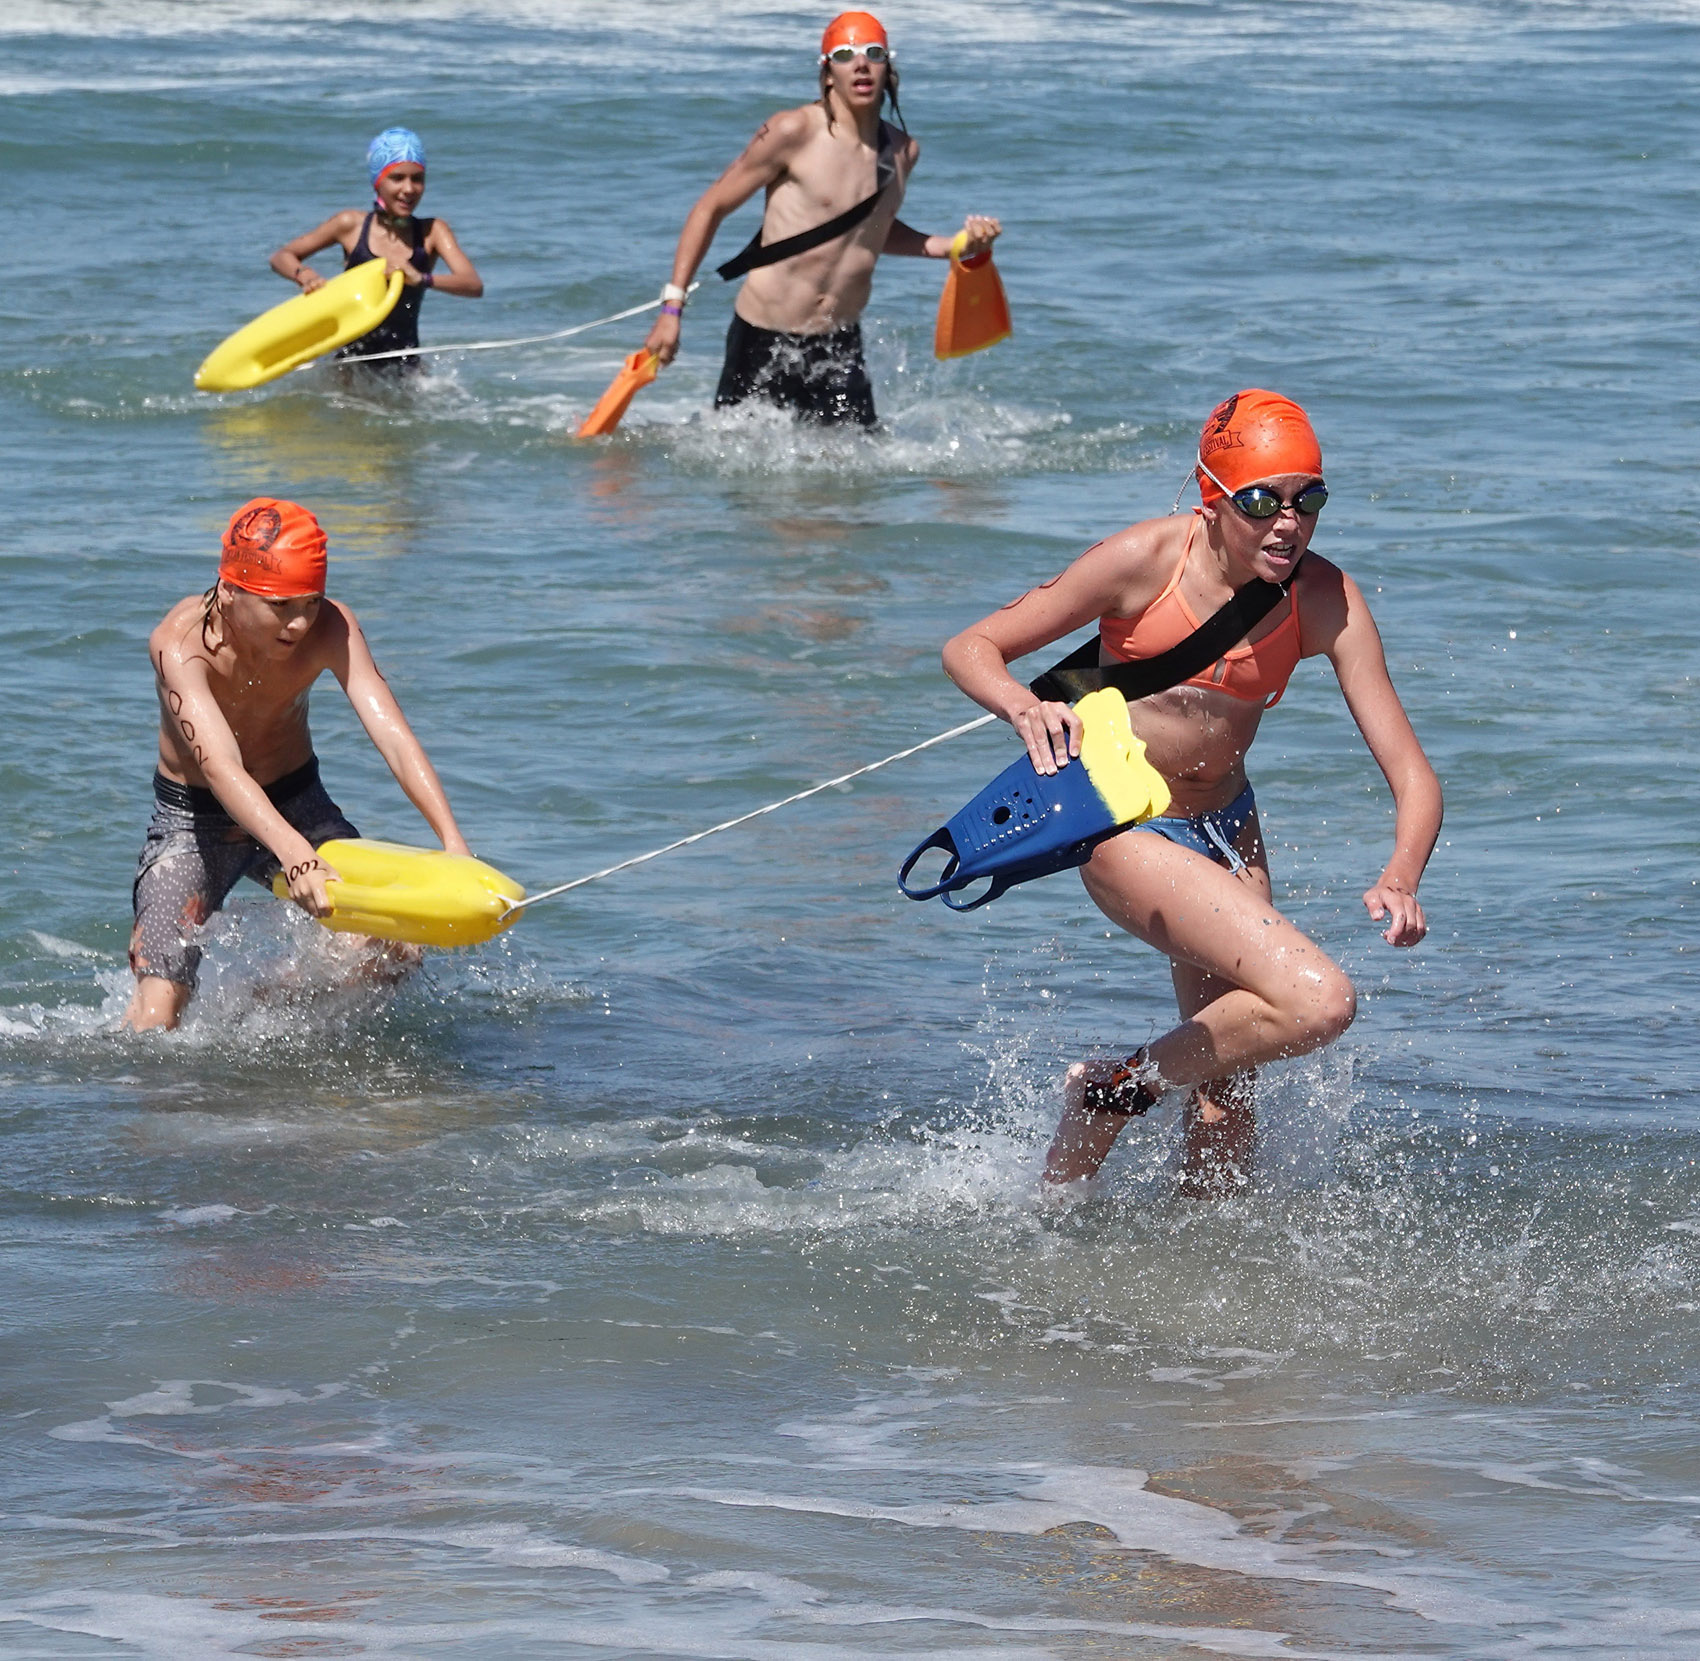 San Clemente junior lifeguards show their skills in a lifeguard surf rescue relay race at the San Clemente Ocean Festival. Photo: Fred Swegles